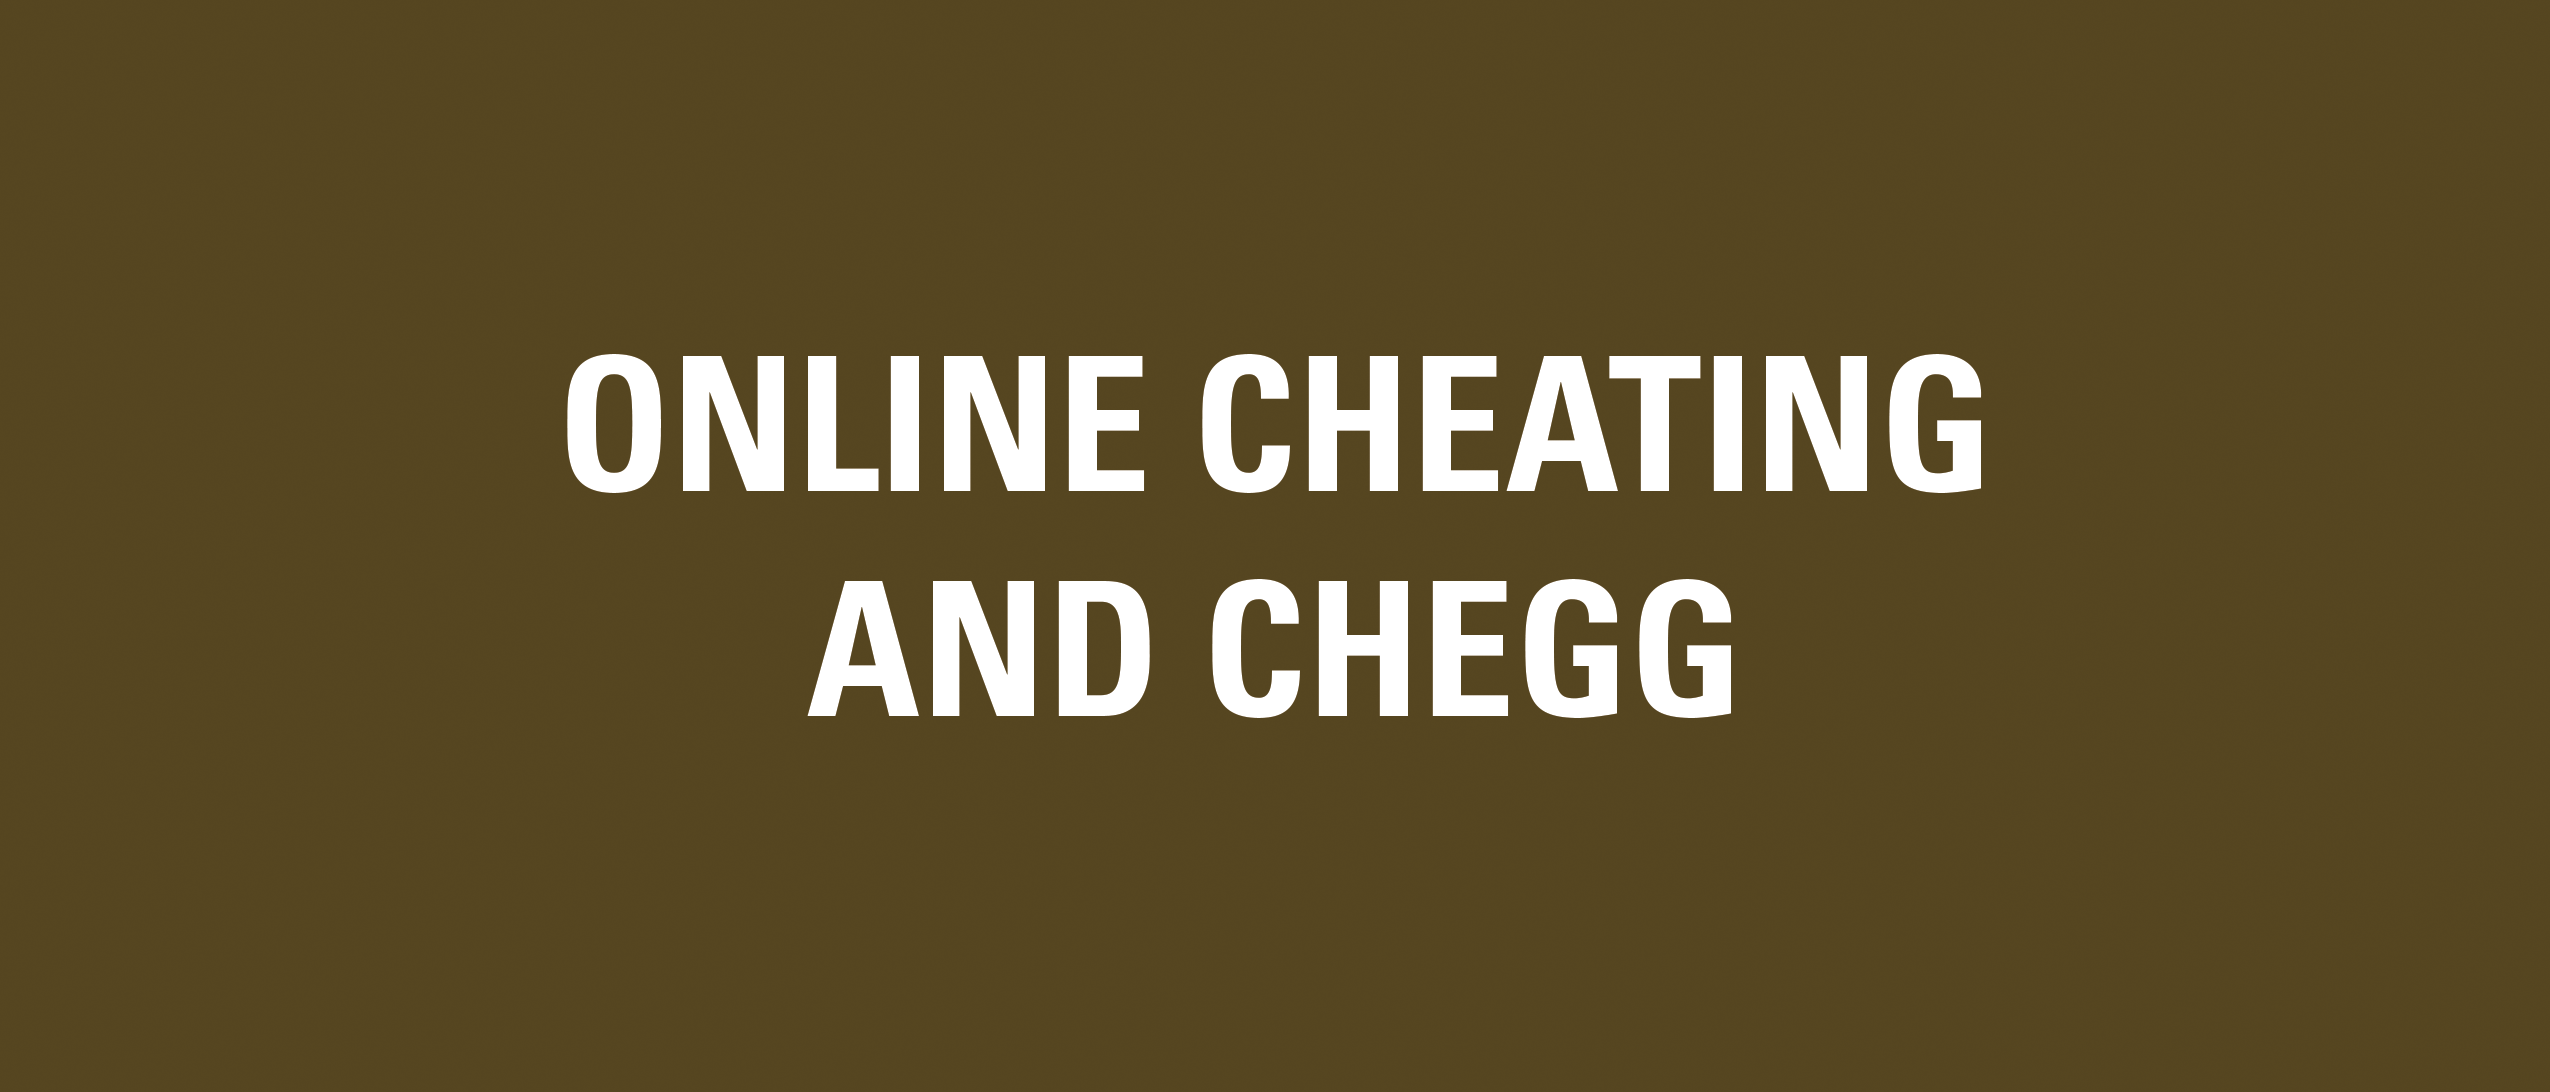 Online Cheating and Chegg